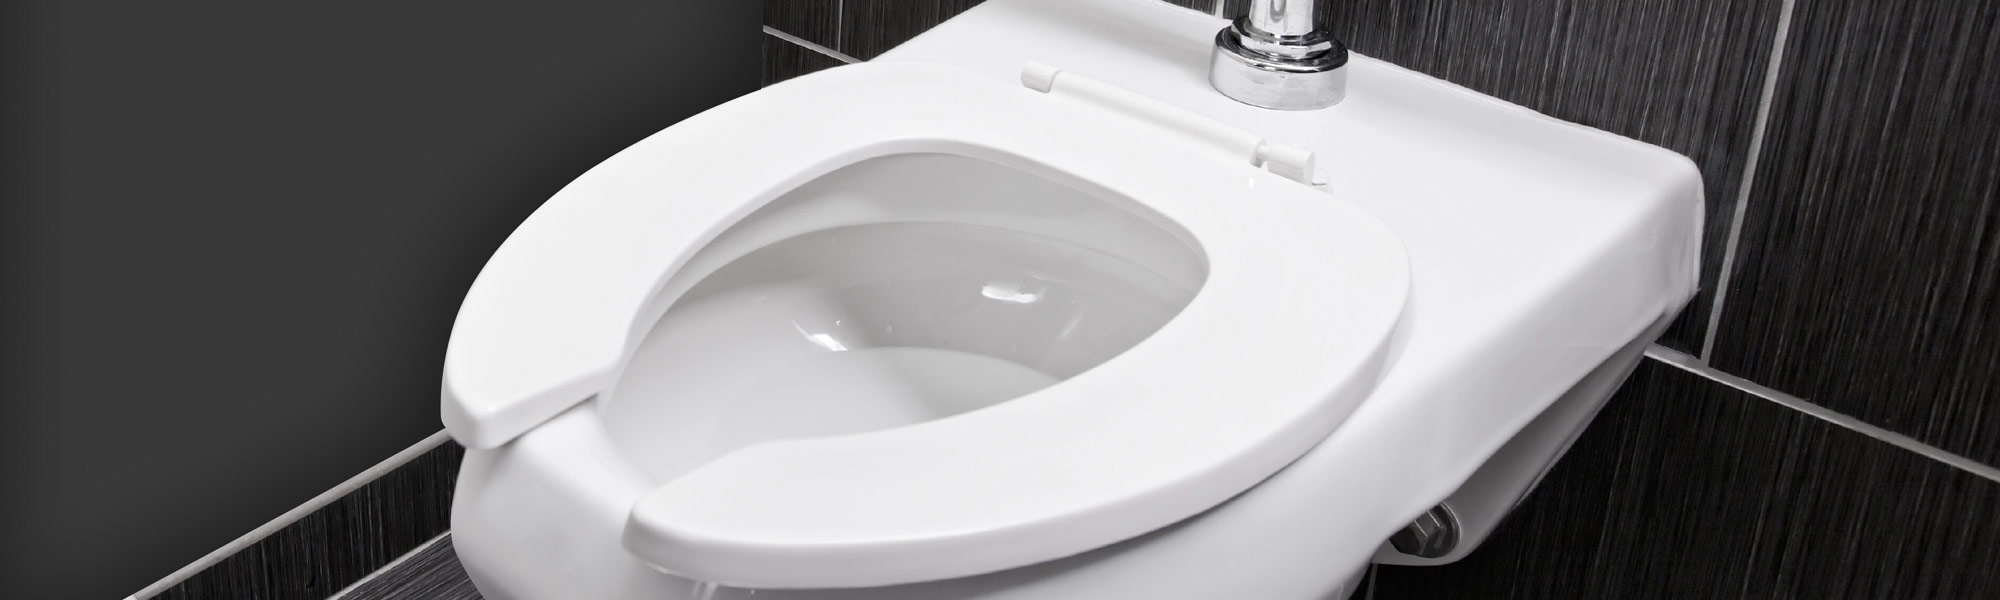 Toilet Seat Germs and More